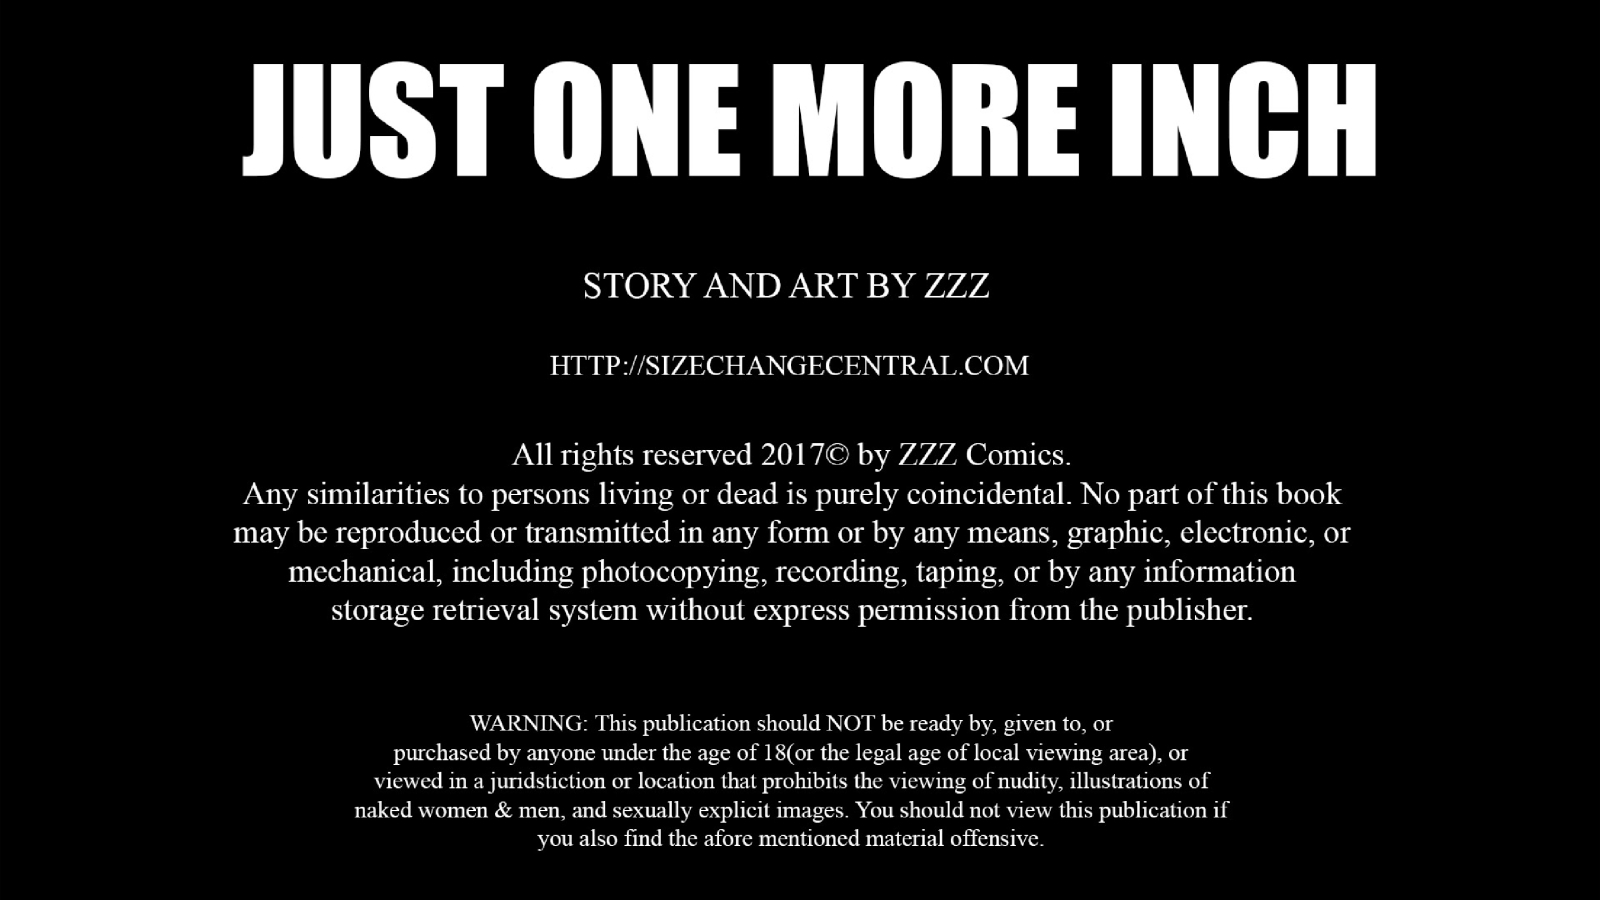 ZZZ- Just One More Inch image 1